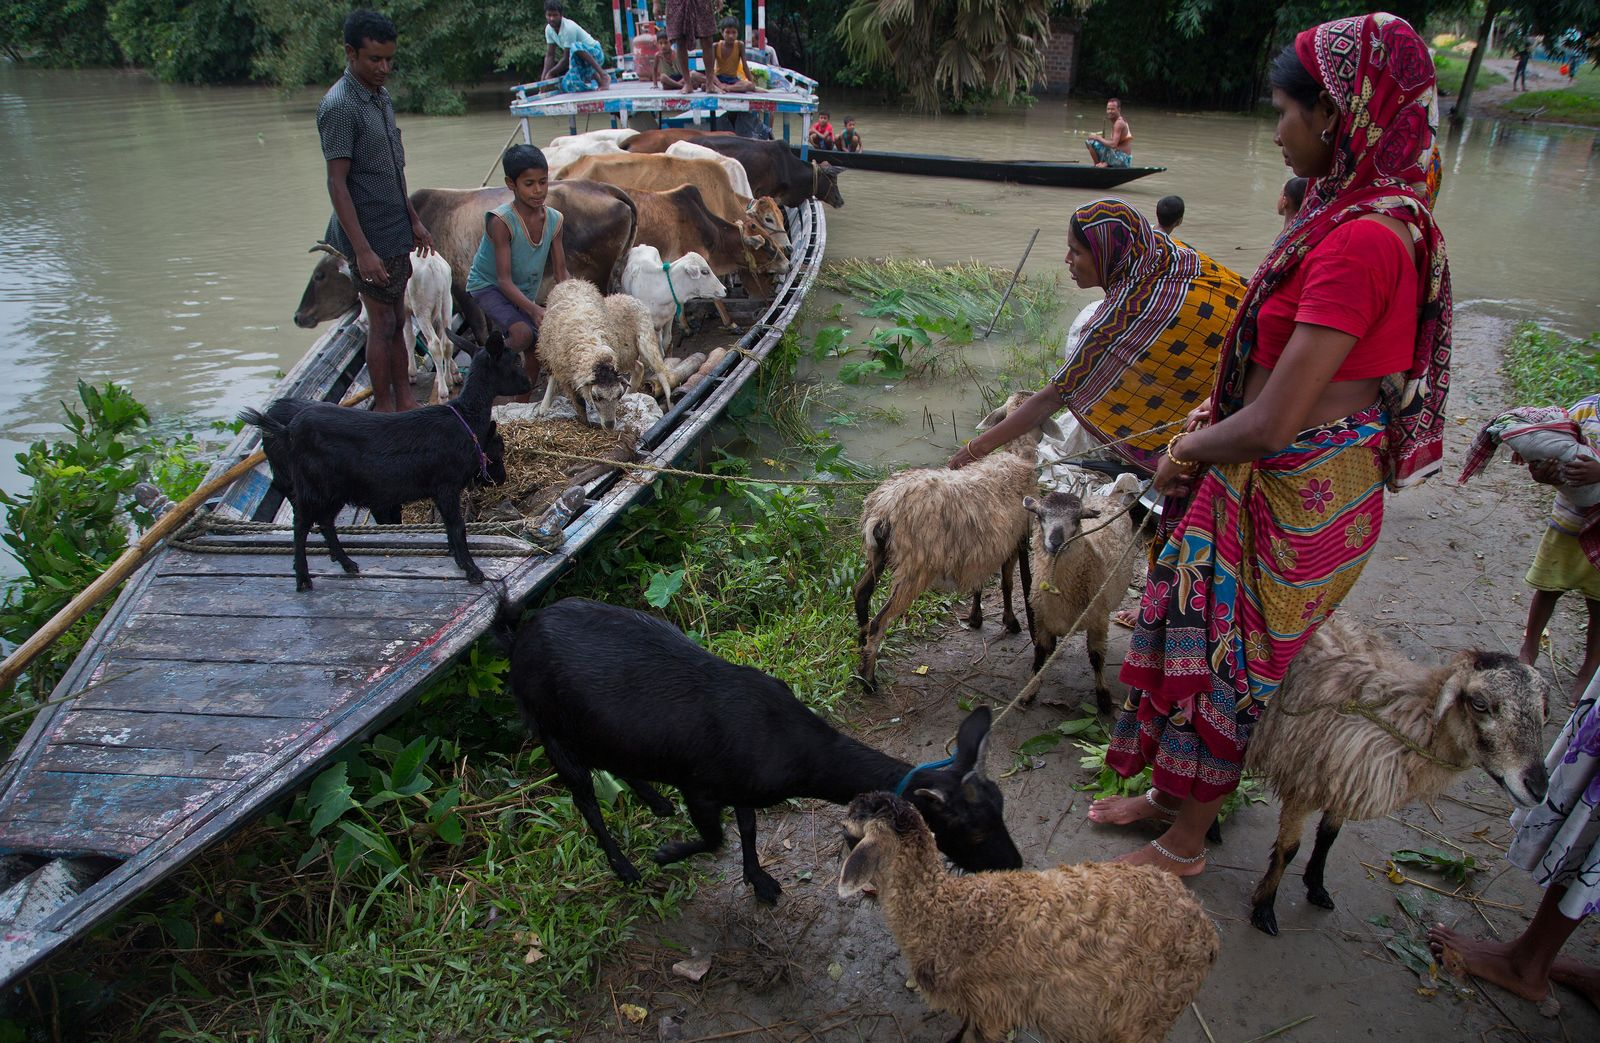 Flood affected villagers transport their cattle to a highland in Katahguri village along the river Brahmaputra, east of Gauhati, India, Sunday, July 14, 2019. Officials in northeastern India said more than a dozen people were killed and over a million affected by flooding. Rain-triggered floods, mudslides and lightning have left a trail of destruction in other parts of South Asia. (AP Photo/Anupam Nath)